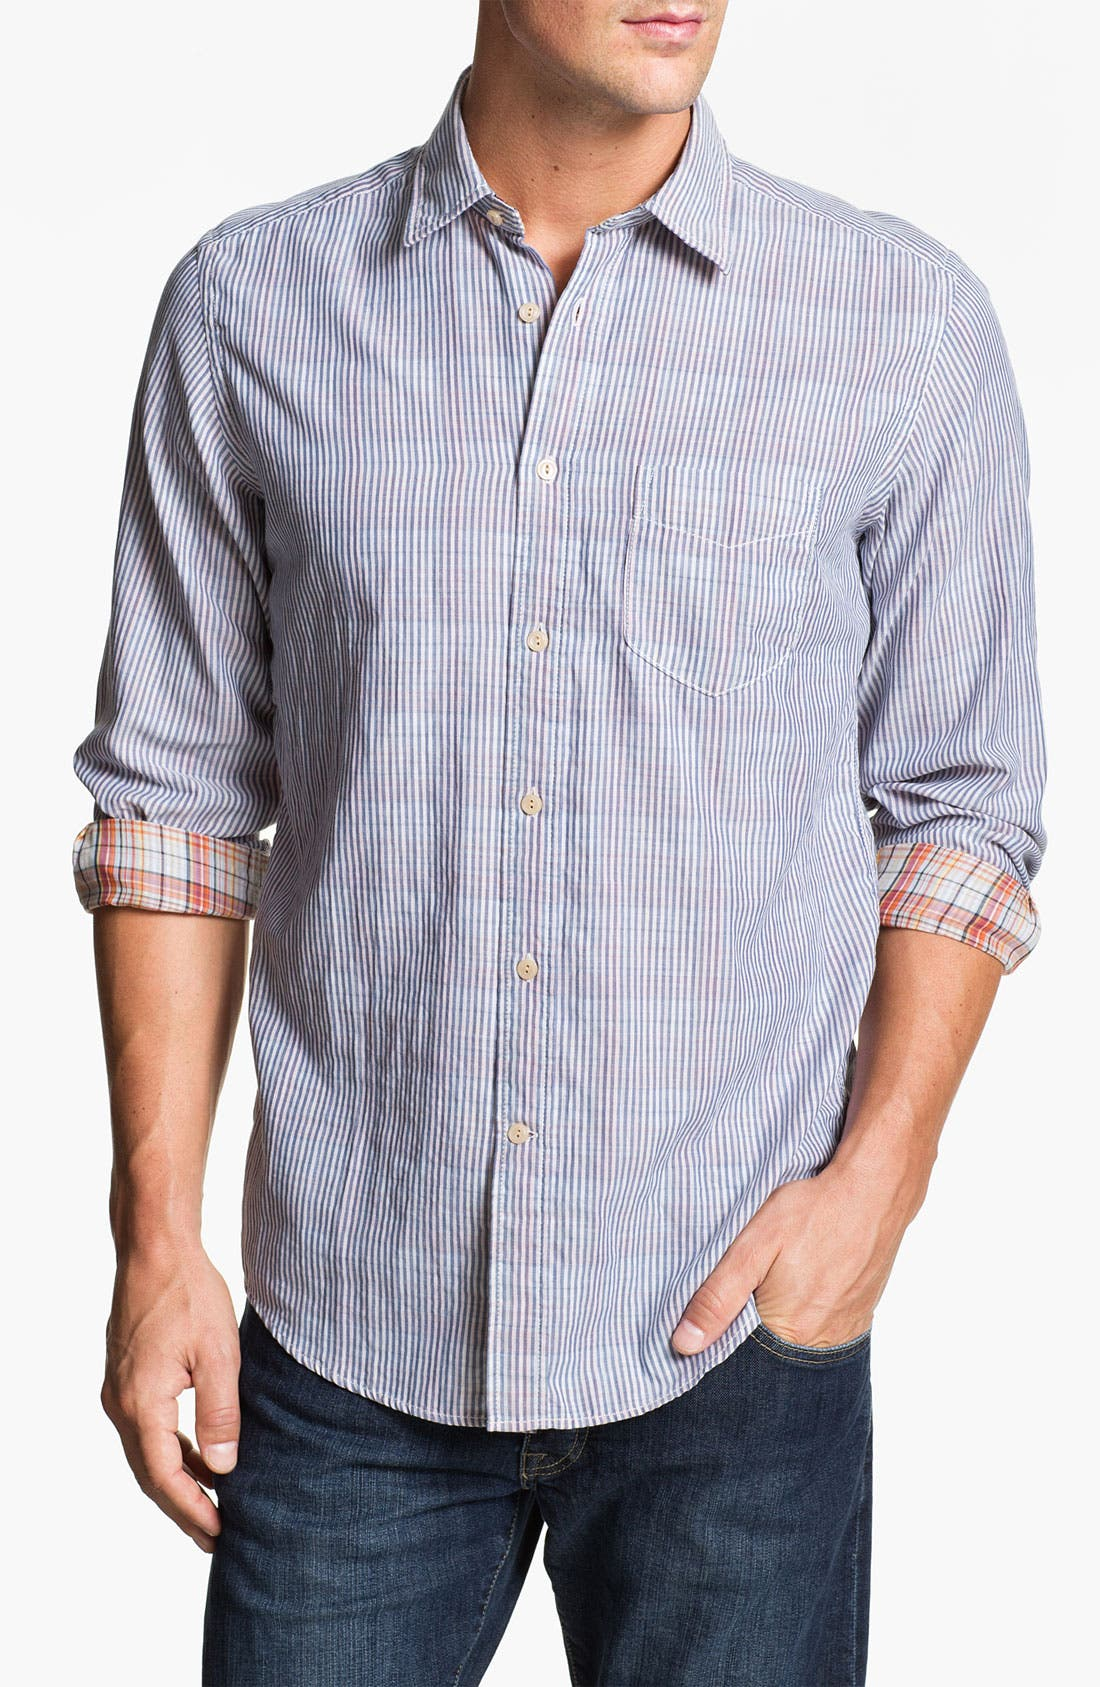 Alternate Image 1 Selected - Façonnable Tailored Denim Regular Fit Sport Shirt